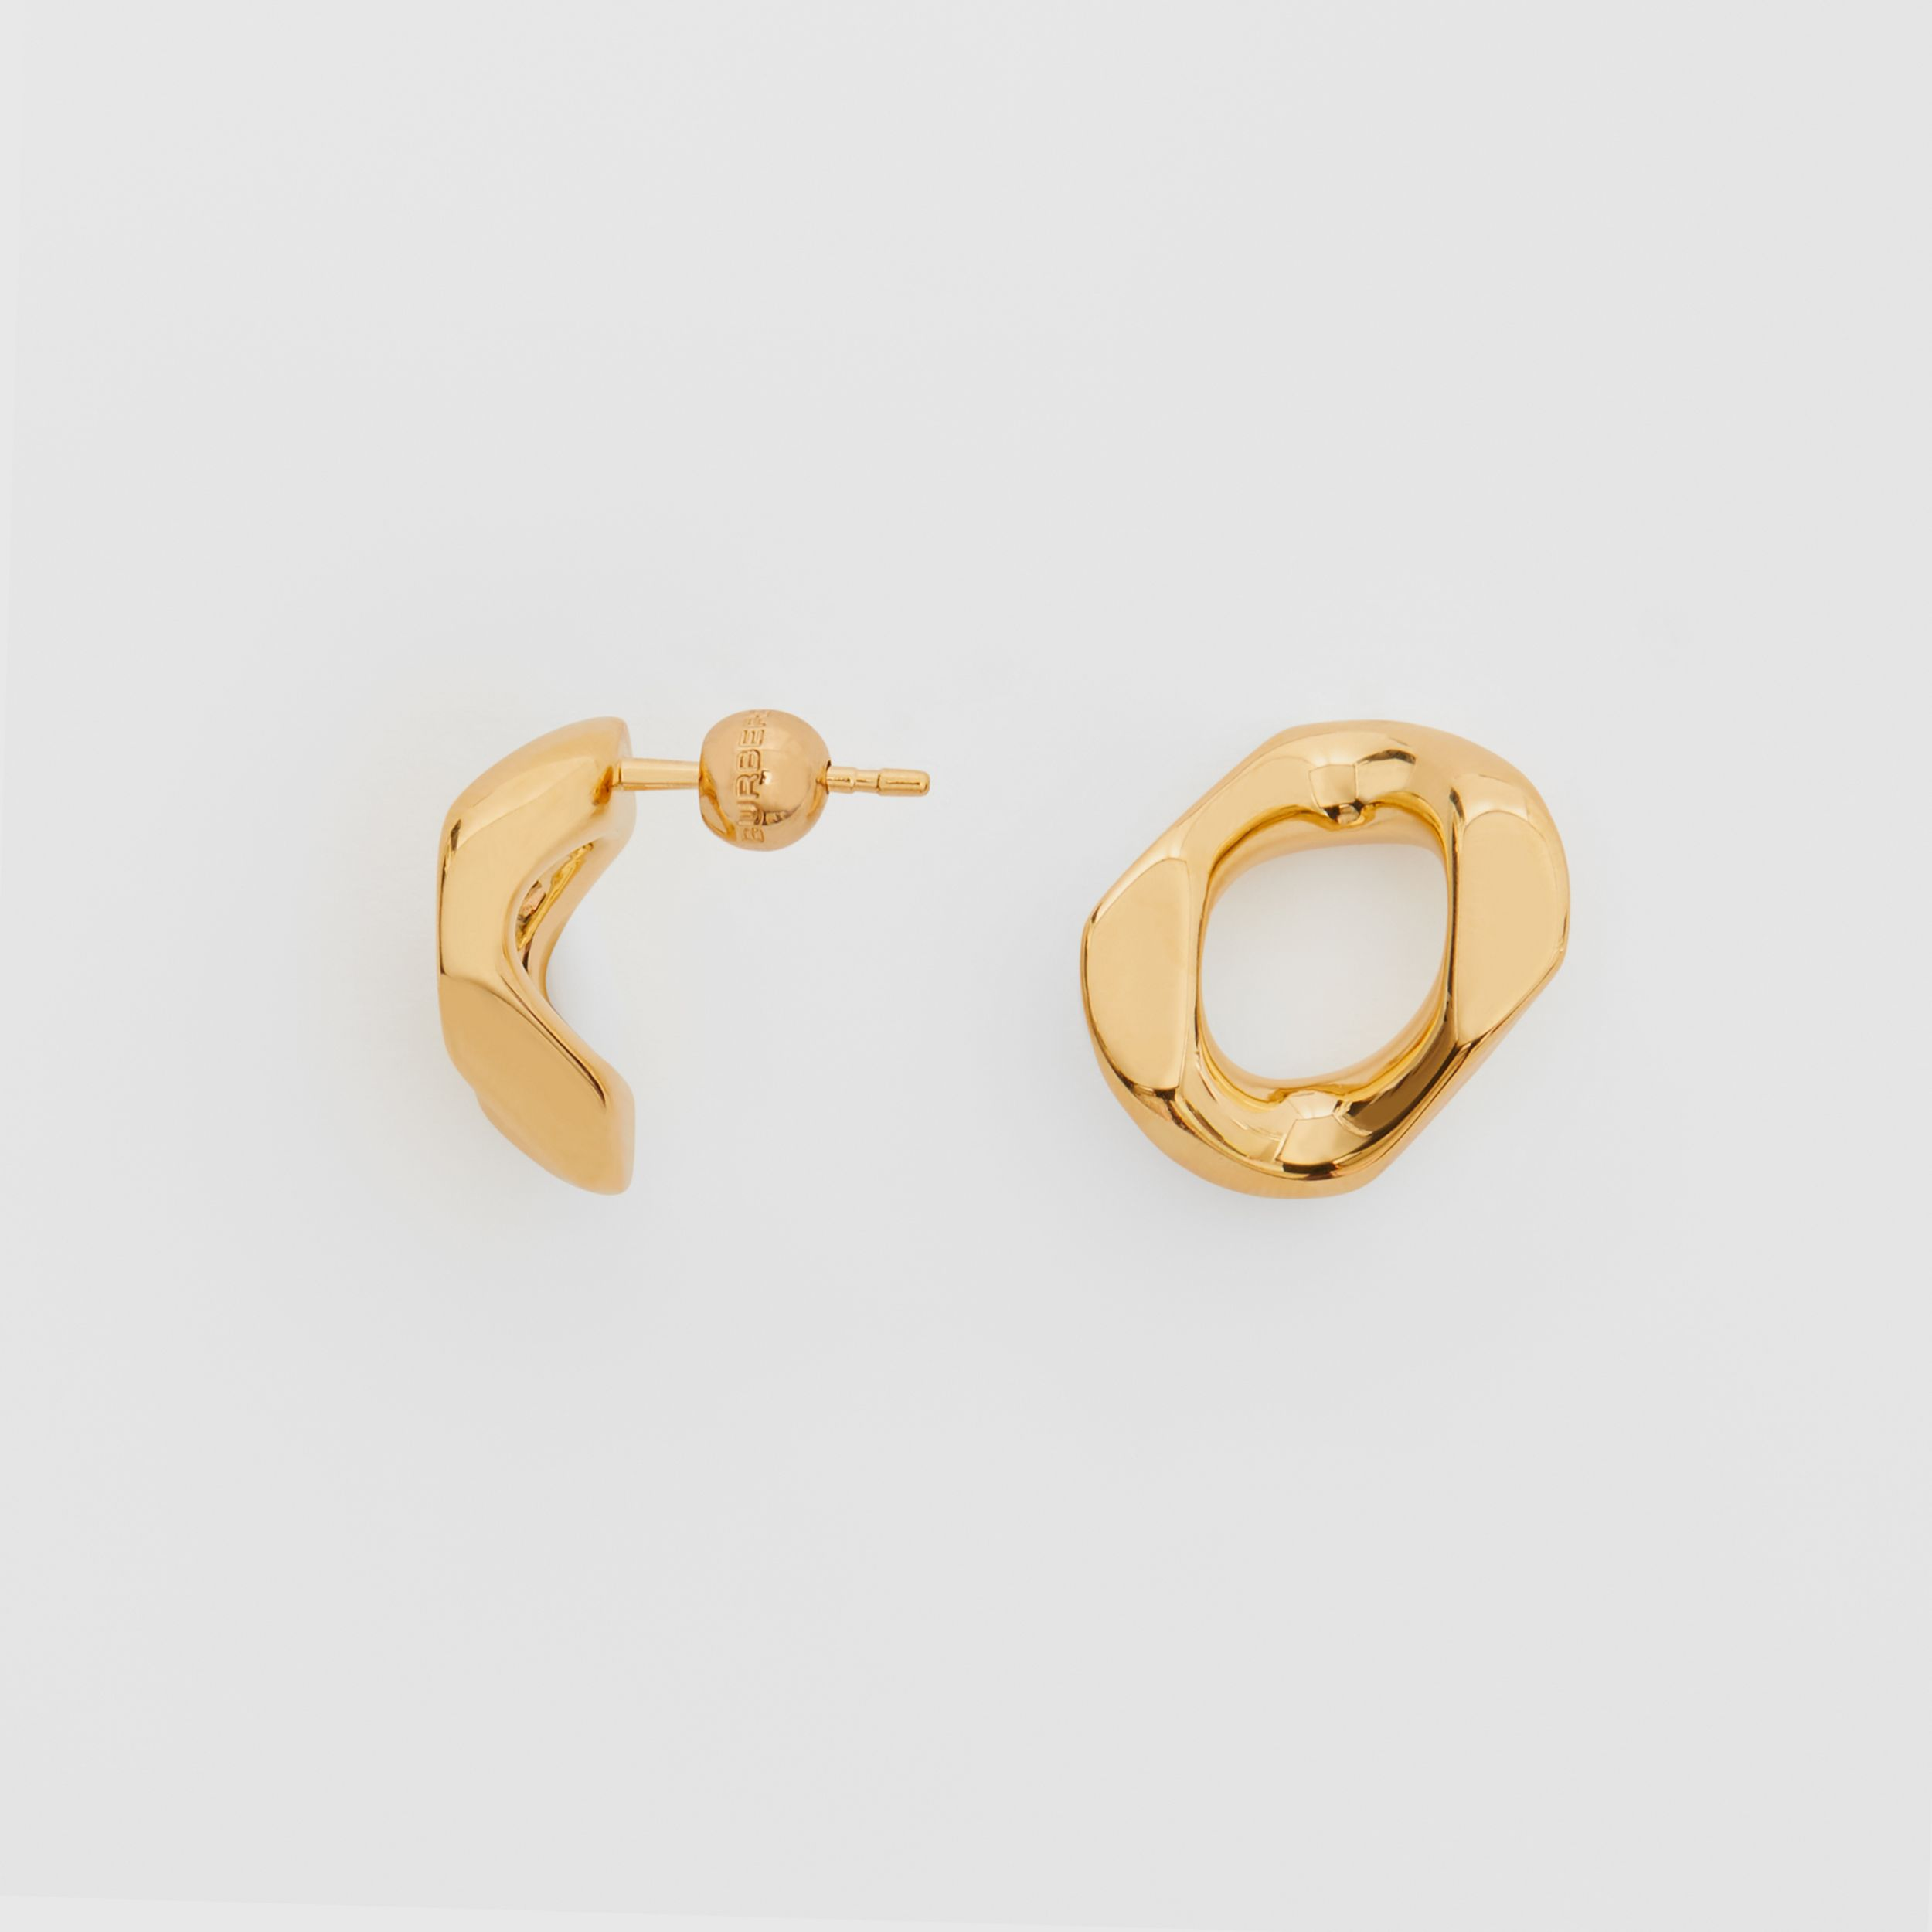 Small Gold-plated Chain-link Earrings in Light - Women | Burberry - 4